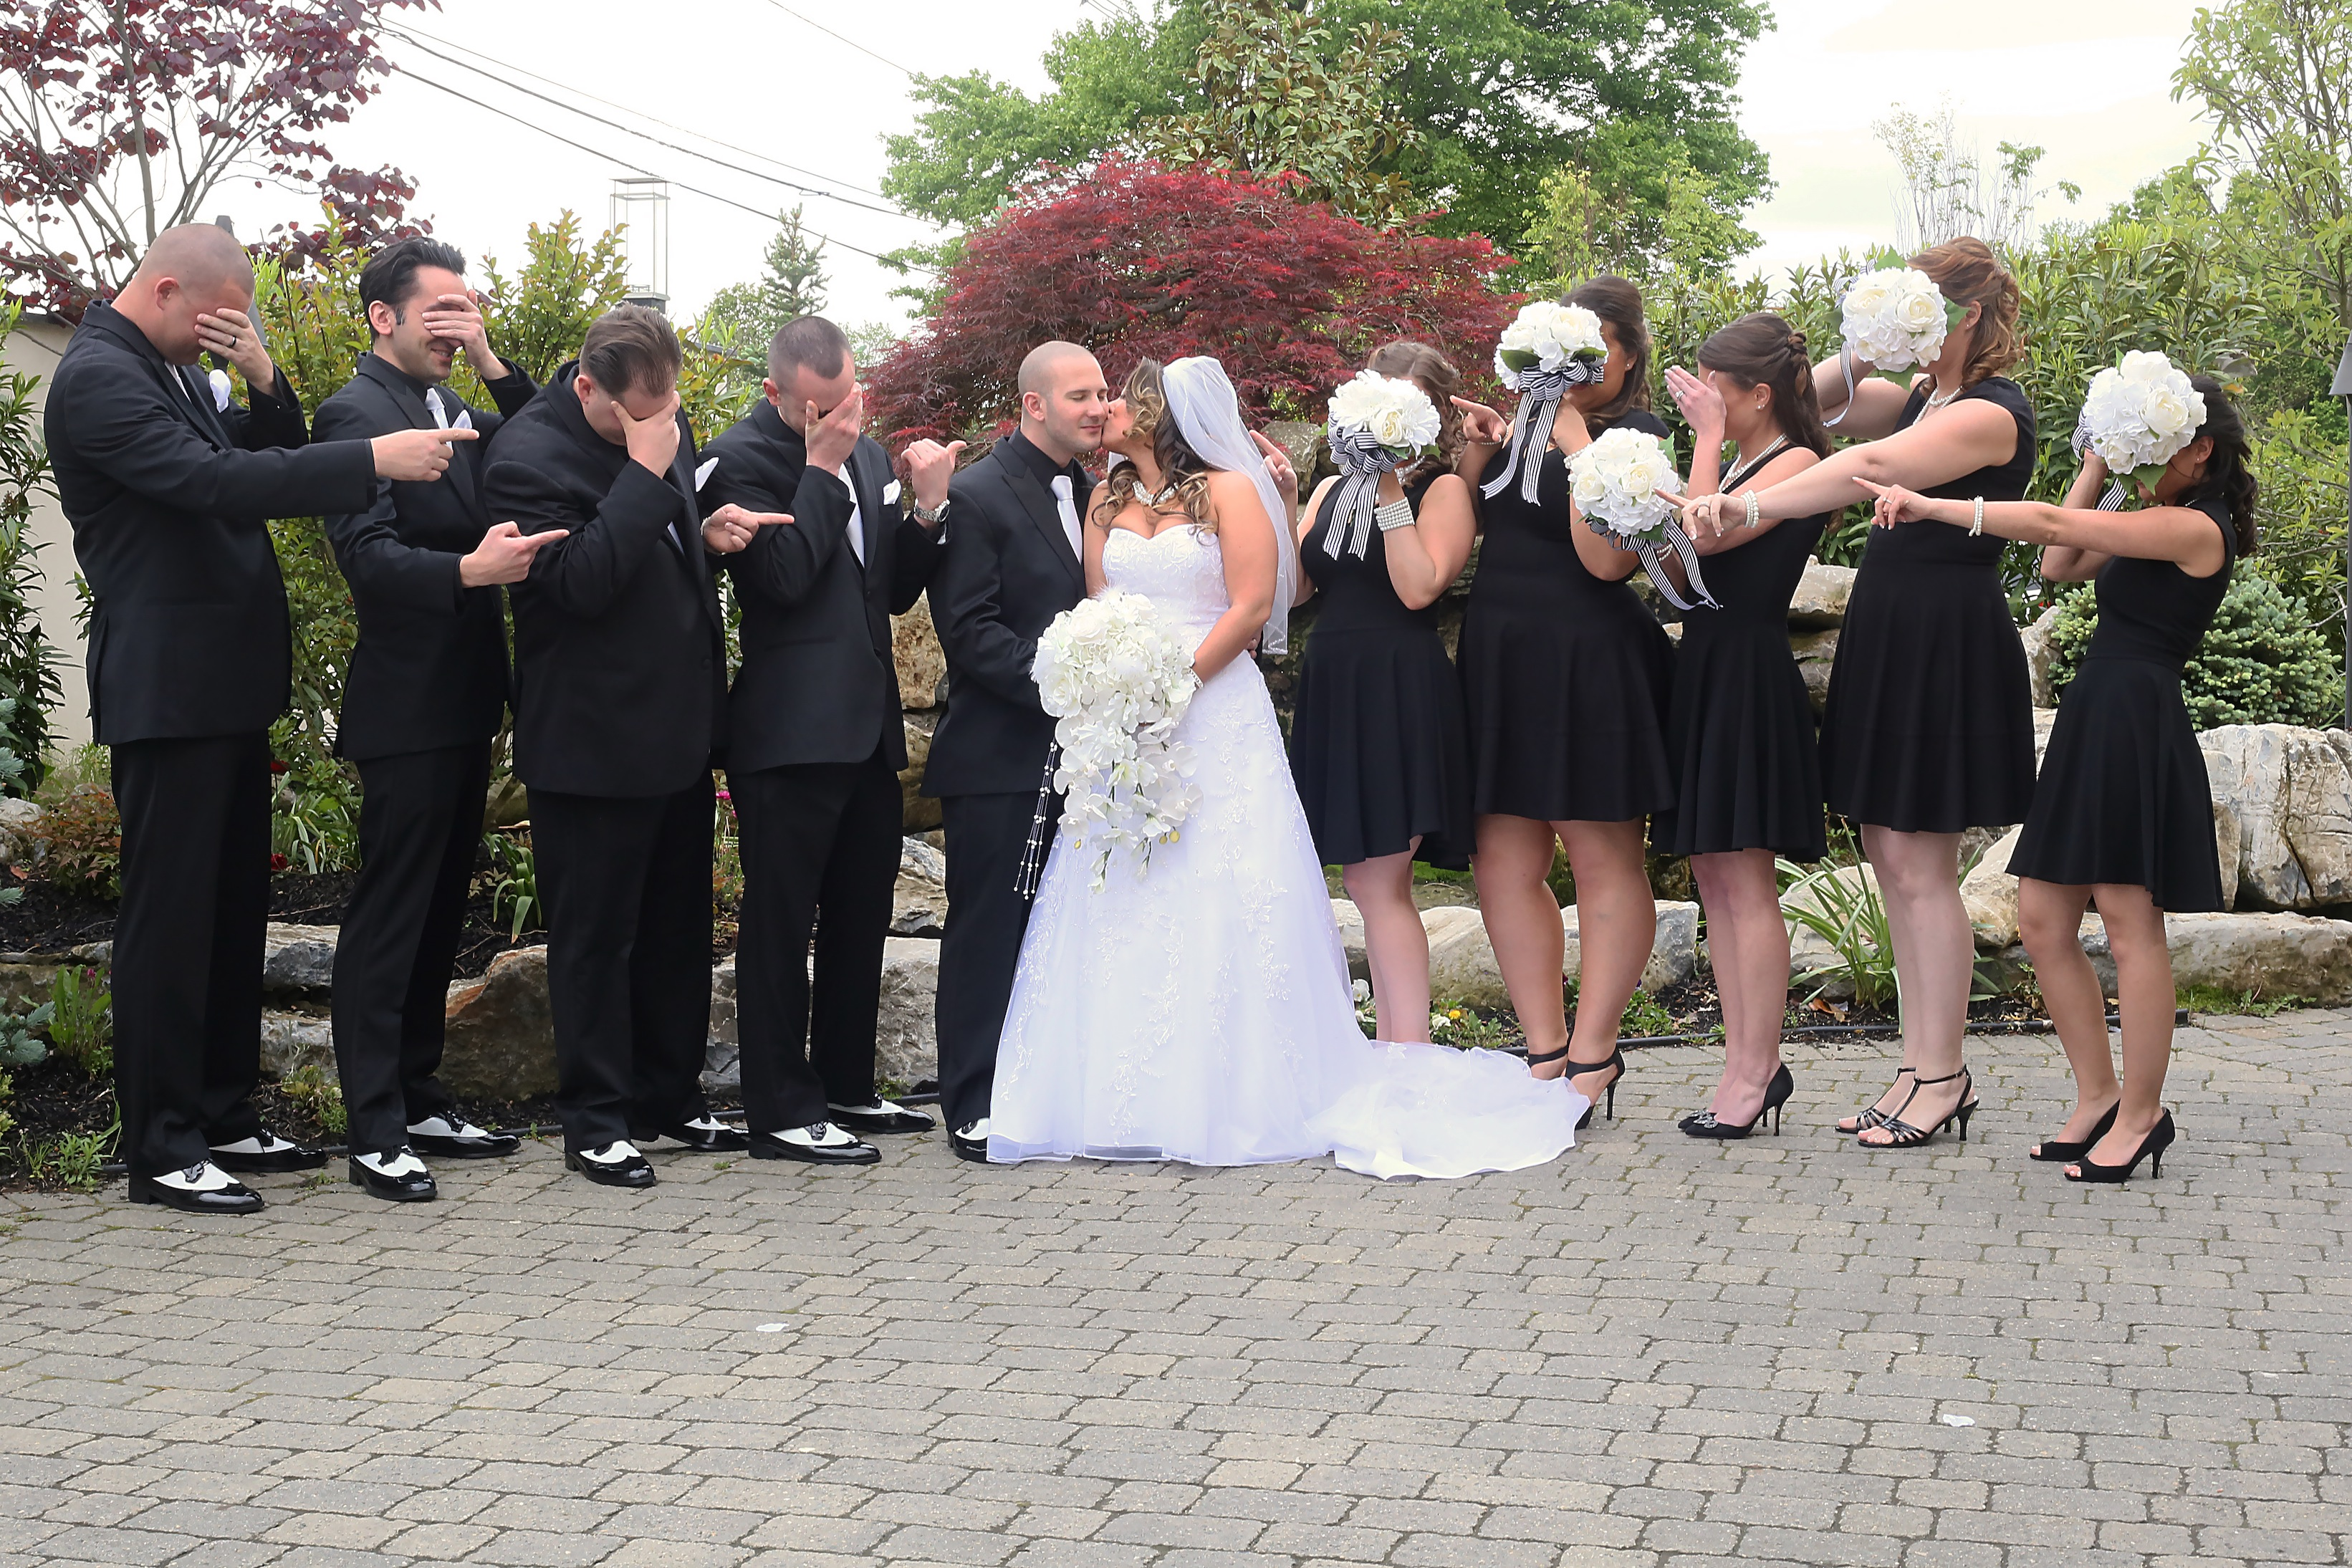 GrandMarquisWedding, njweddingphotos, njweddingphotography, njweddingphotographer, oldbridgephotographer, apicturesquememoryphotography, wedding, weddinginspiration, bridalparty, brideandgroom